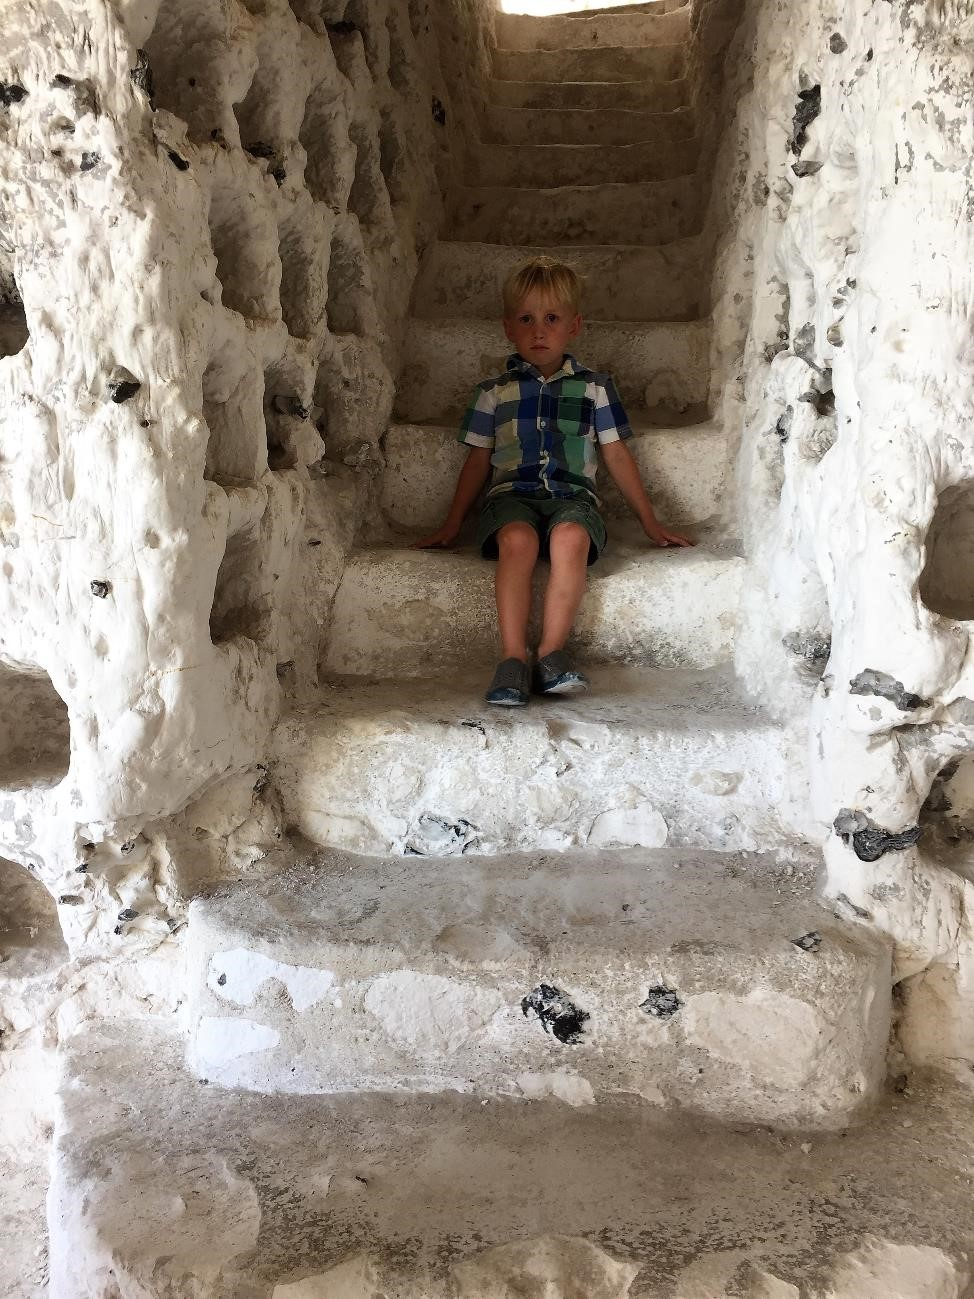 Here he sits in the dovecote, which used to house carrier pigeons.